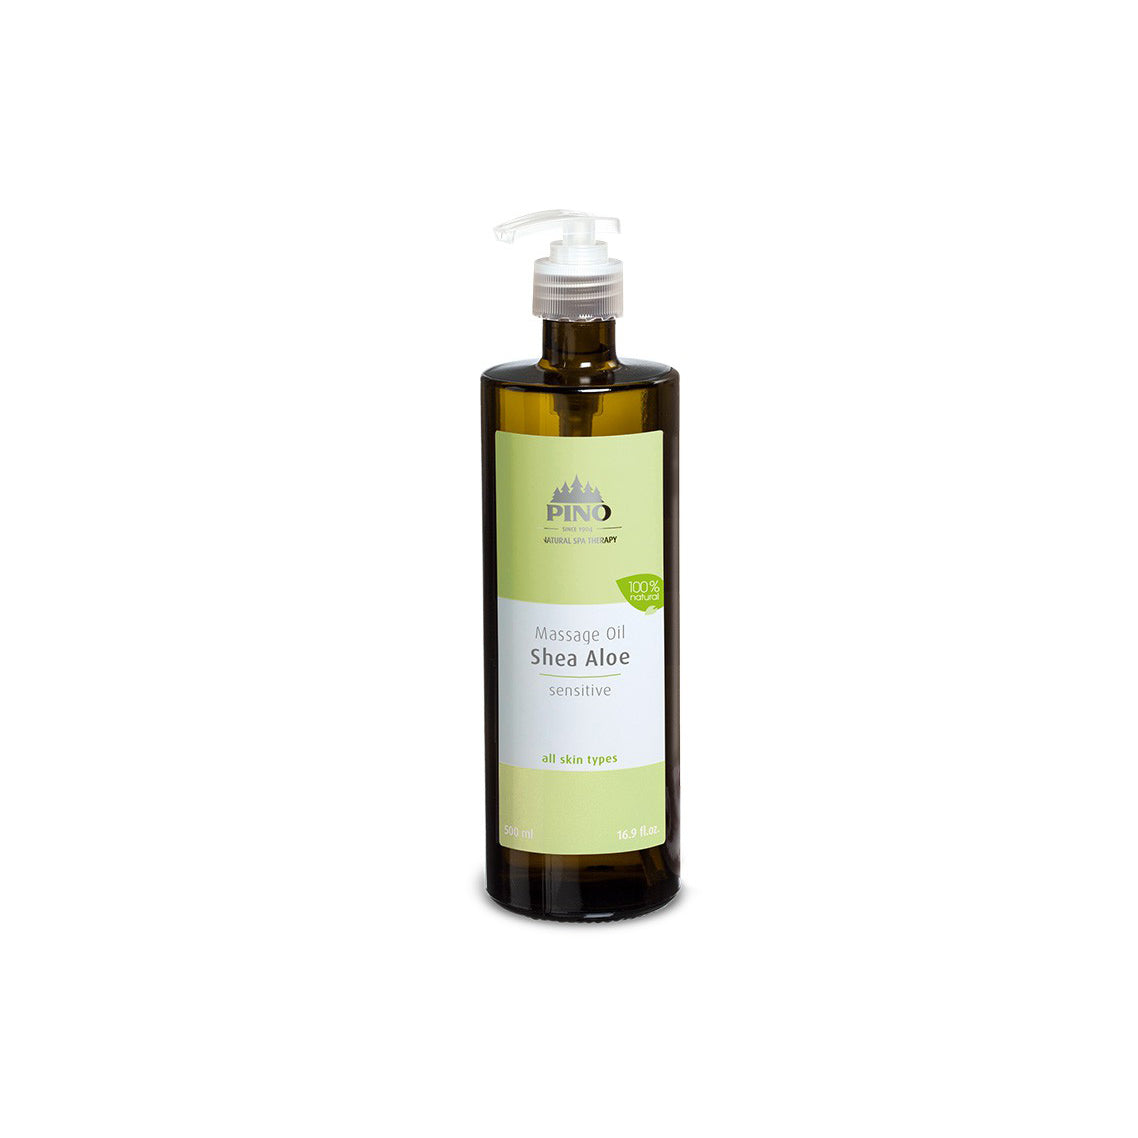 Massage Oil Shea Aloe